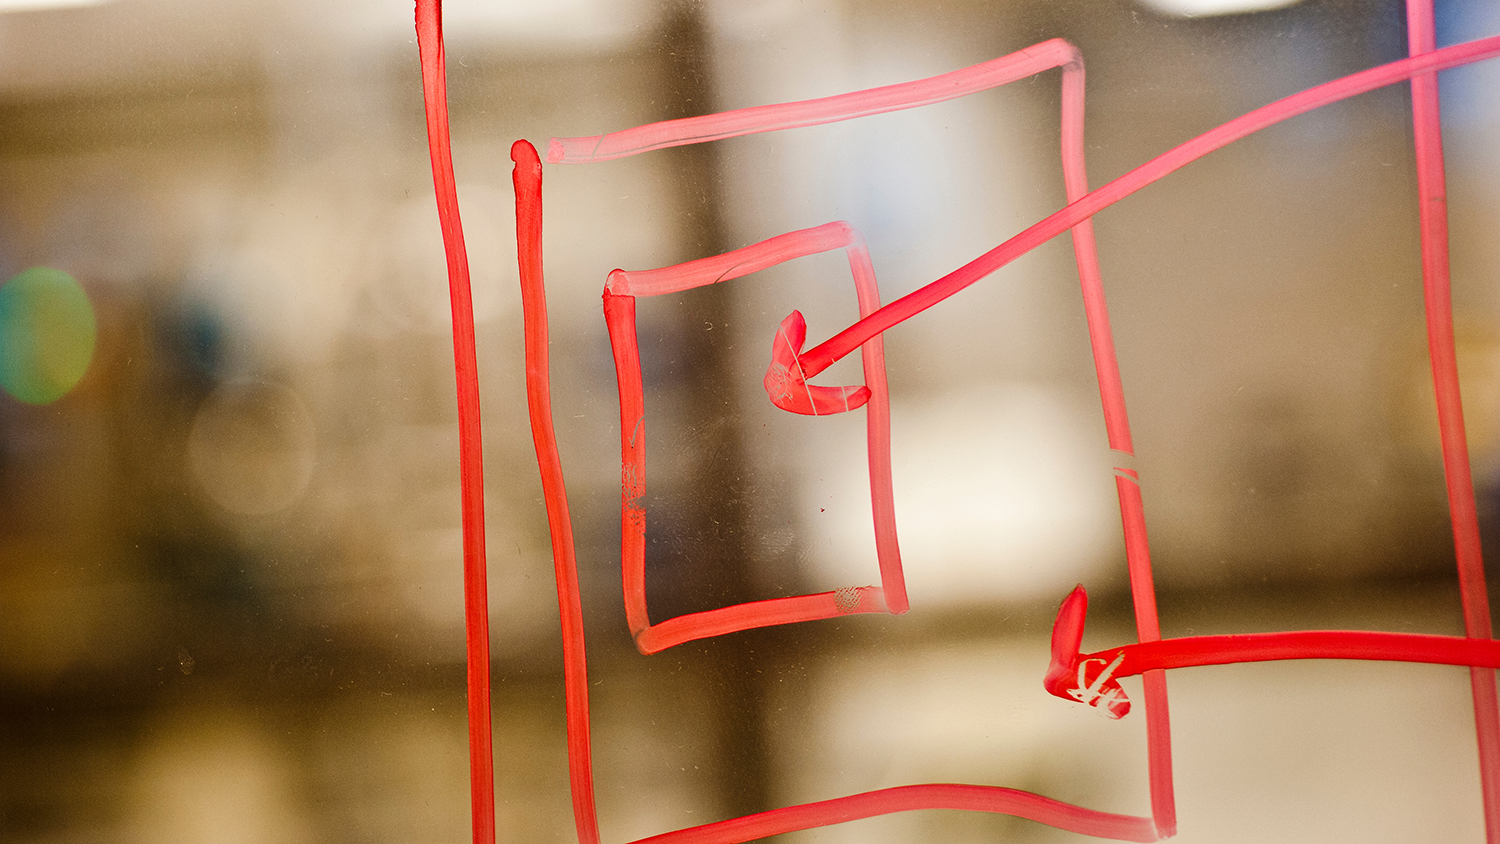 Squares and arrows drawn in red marker on a piece of backlit glass.